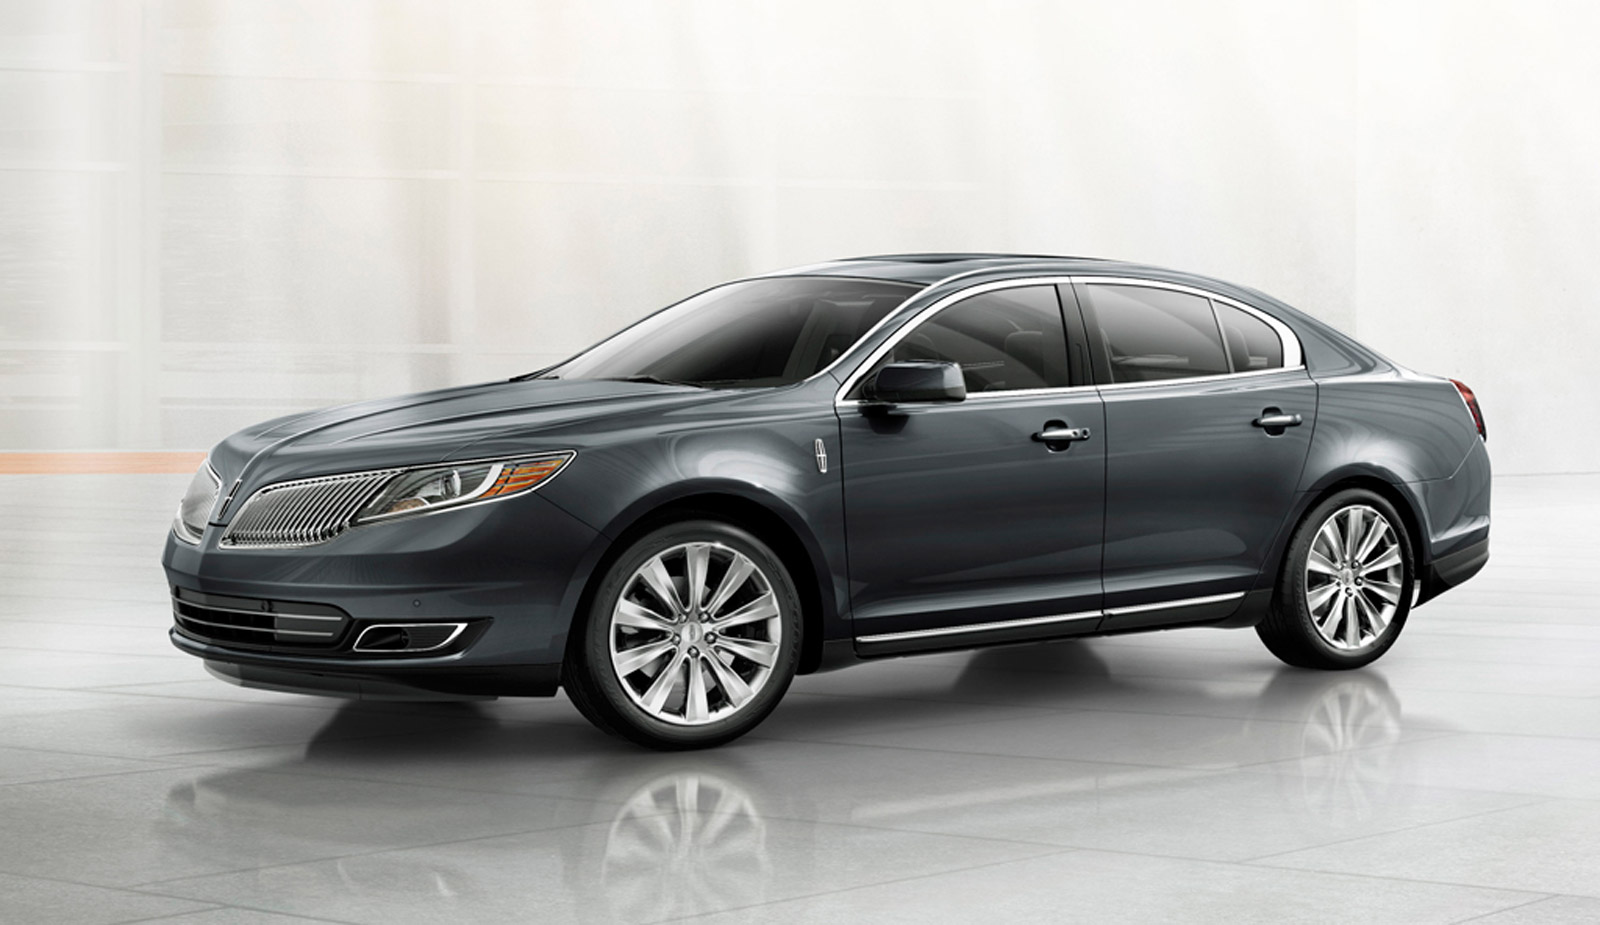 Luxurious features of Lincoln MKS 2014